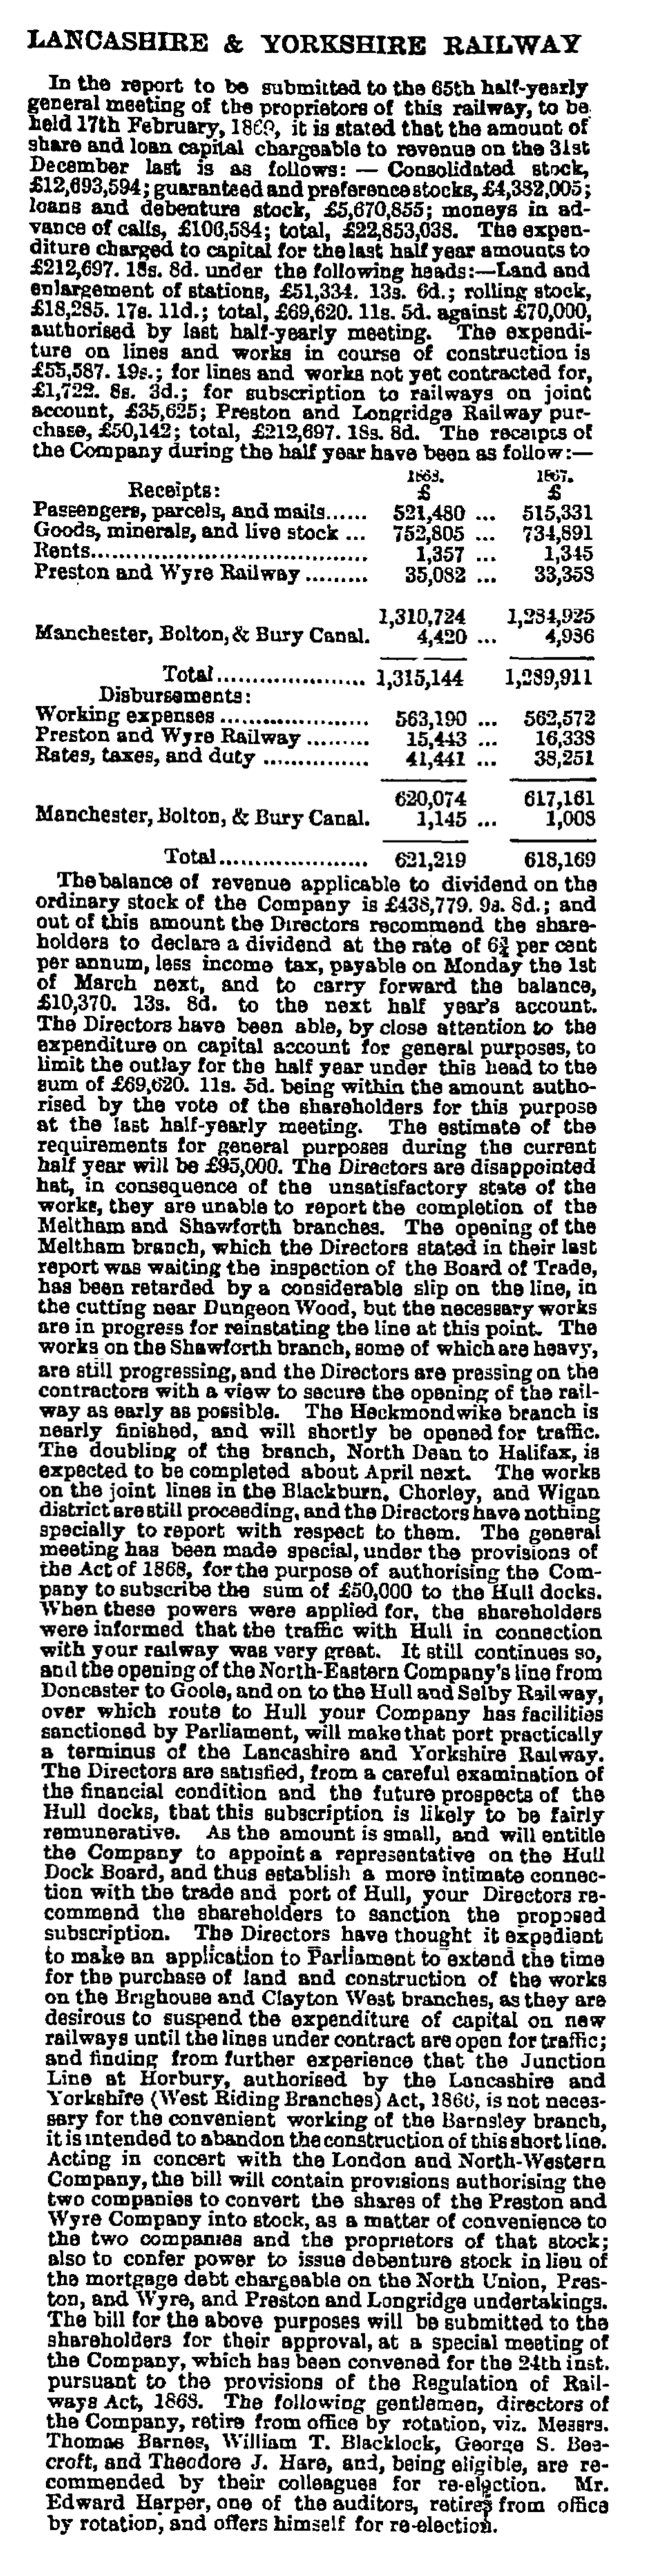 Lancashire and Yorkshire Railway - Manchester Guardian (1828-1900) 11 Feb 1869